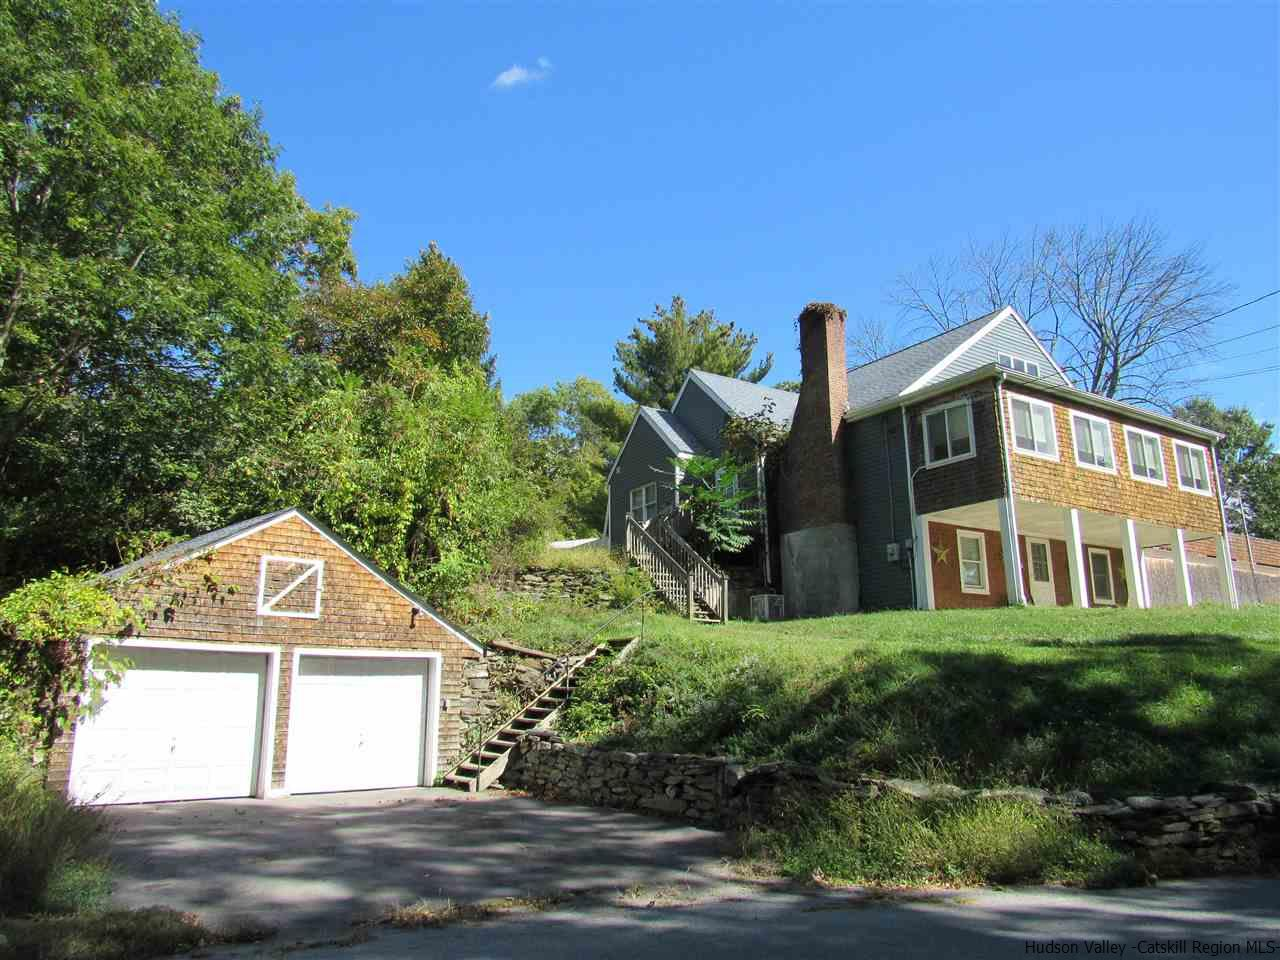 Additional photo for property listing at 59 Ackert Hook 59 Ackert Hook Rhinebeck, New York 12572 United States